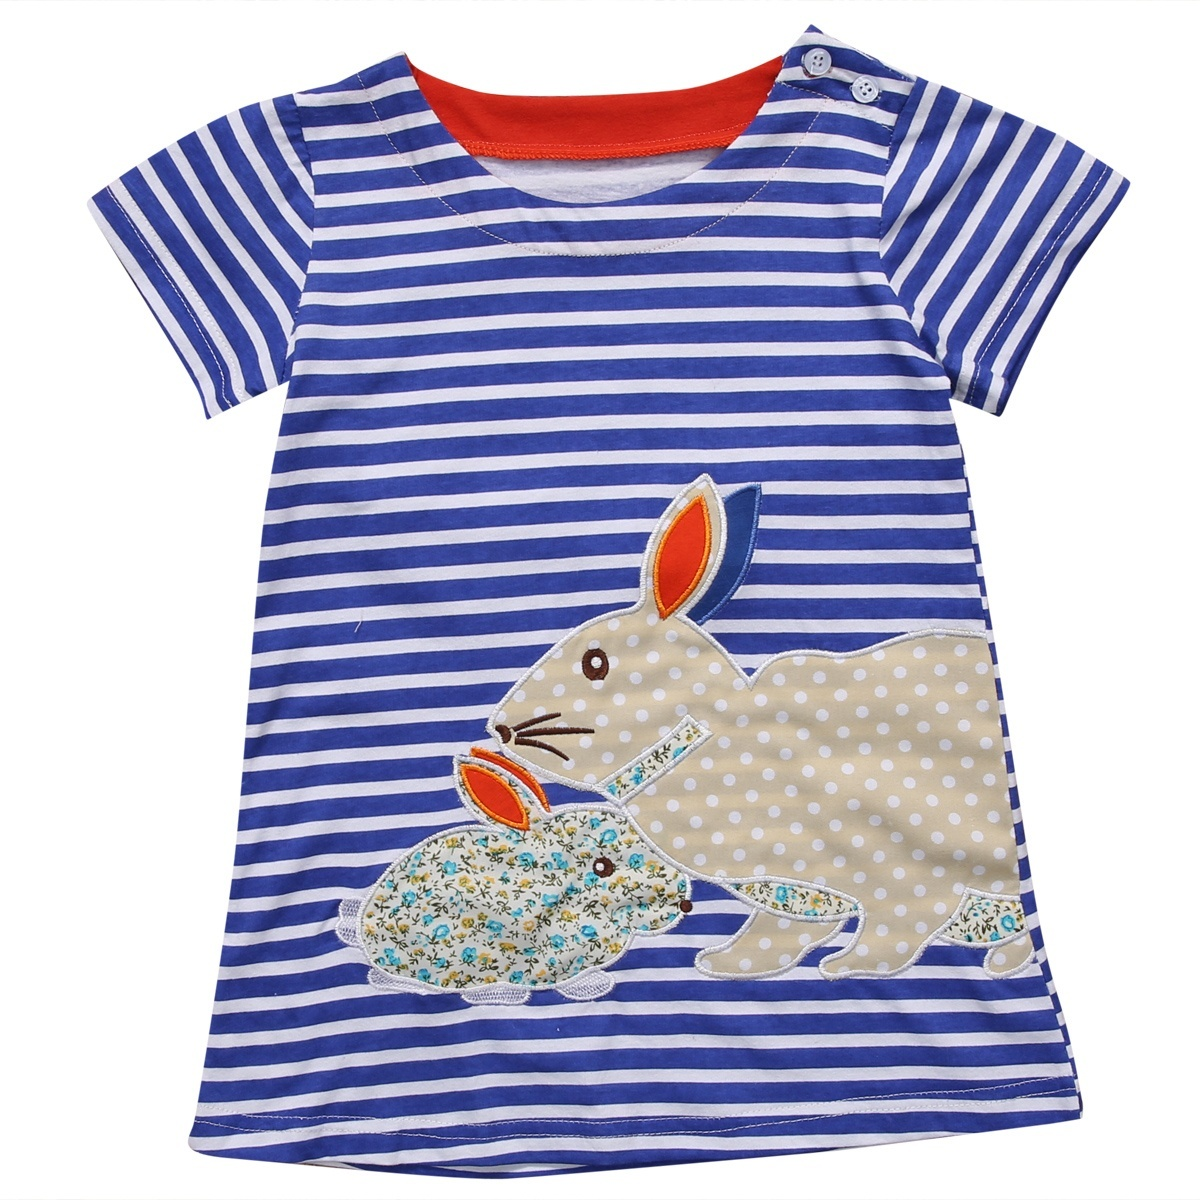 Space Sea Turtle 100/% Cotton Toddler Baby Boys Girls Kids Short Sleeve T Shirt Top Tee Clothes 2-6 T